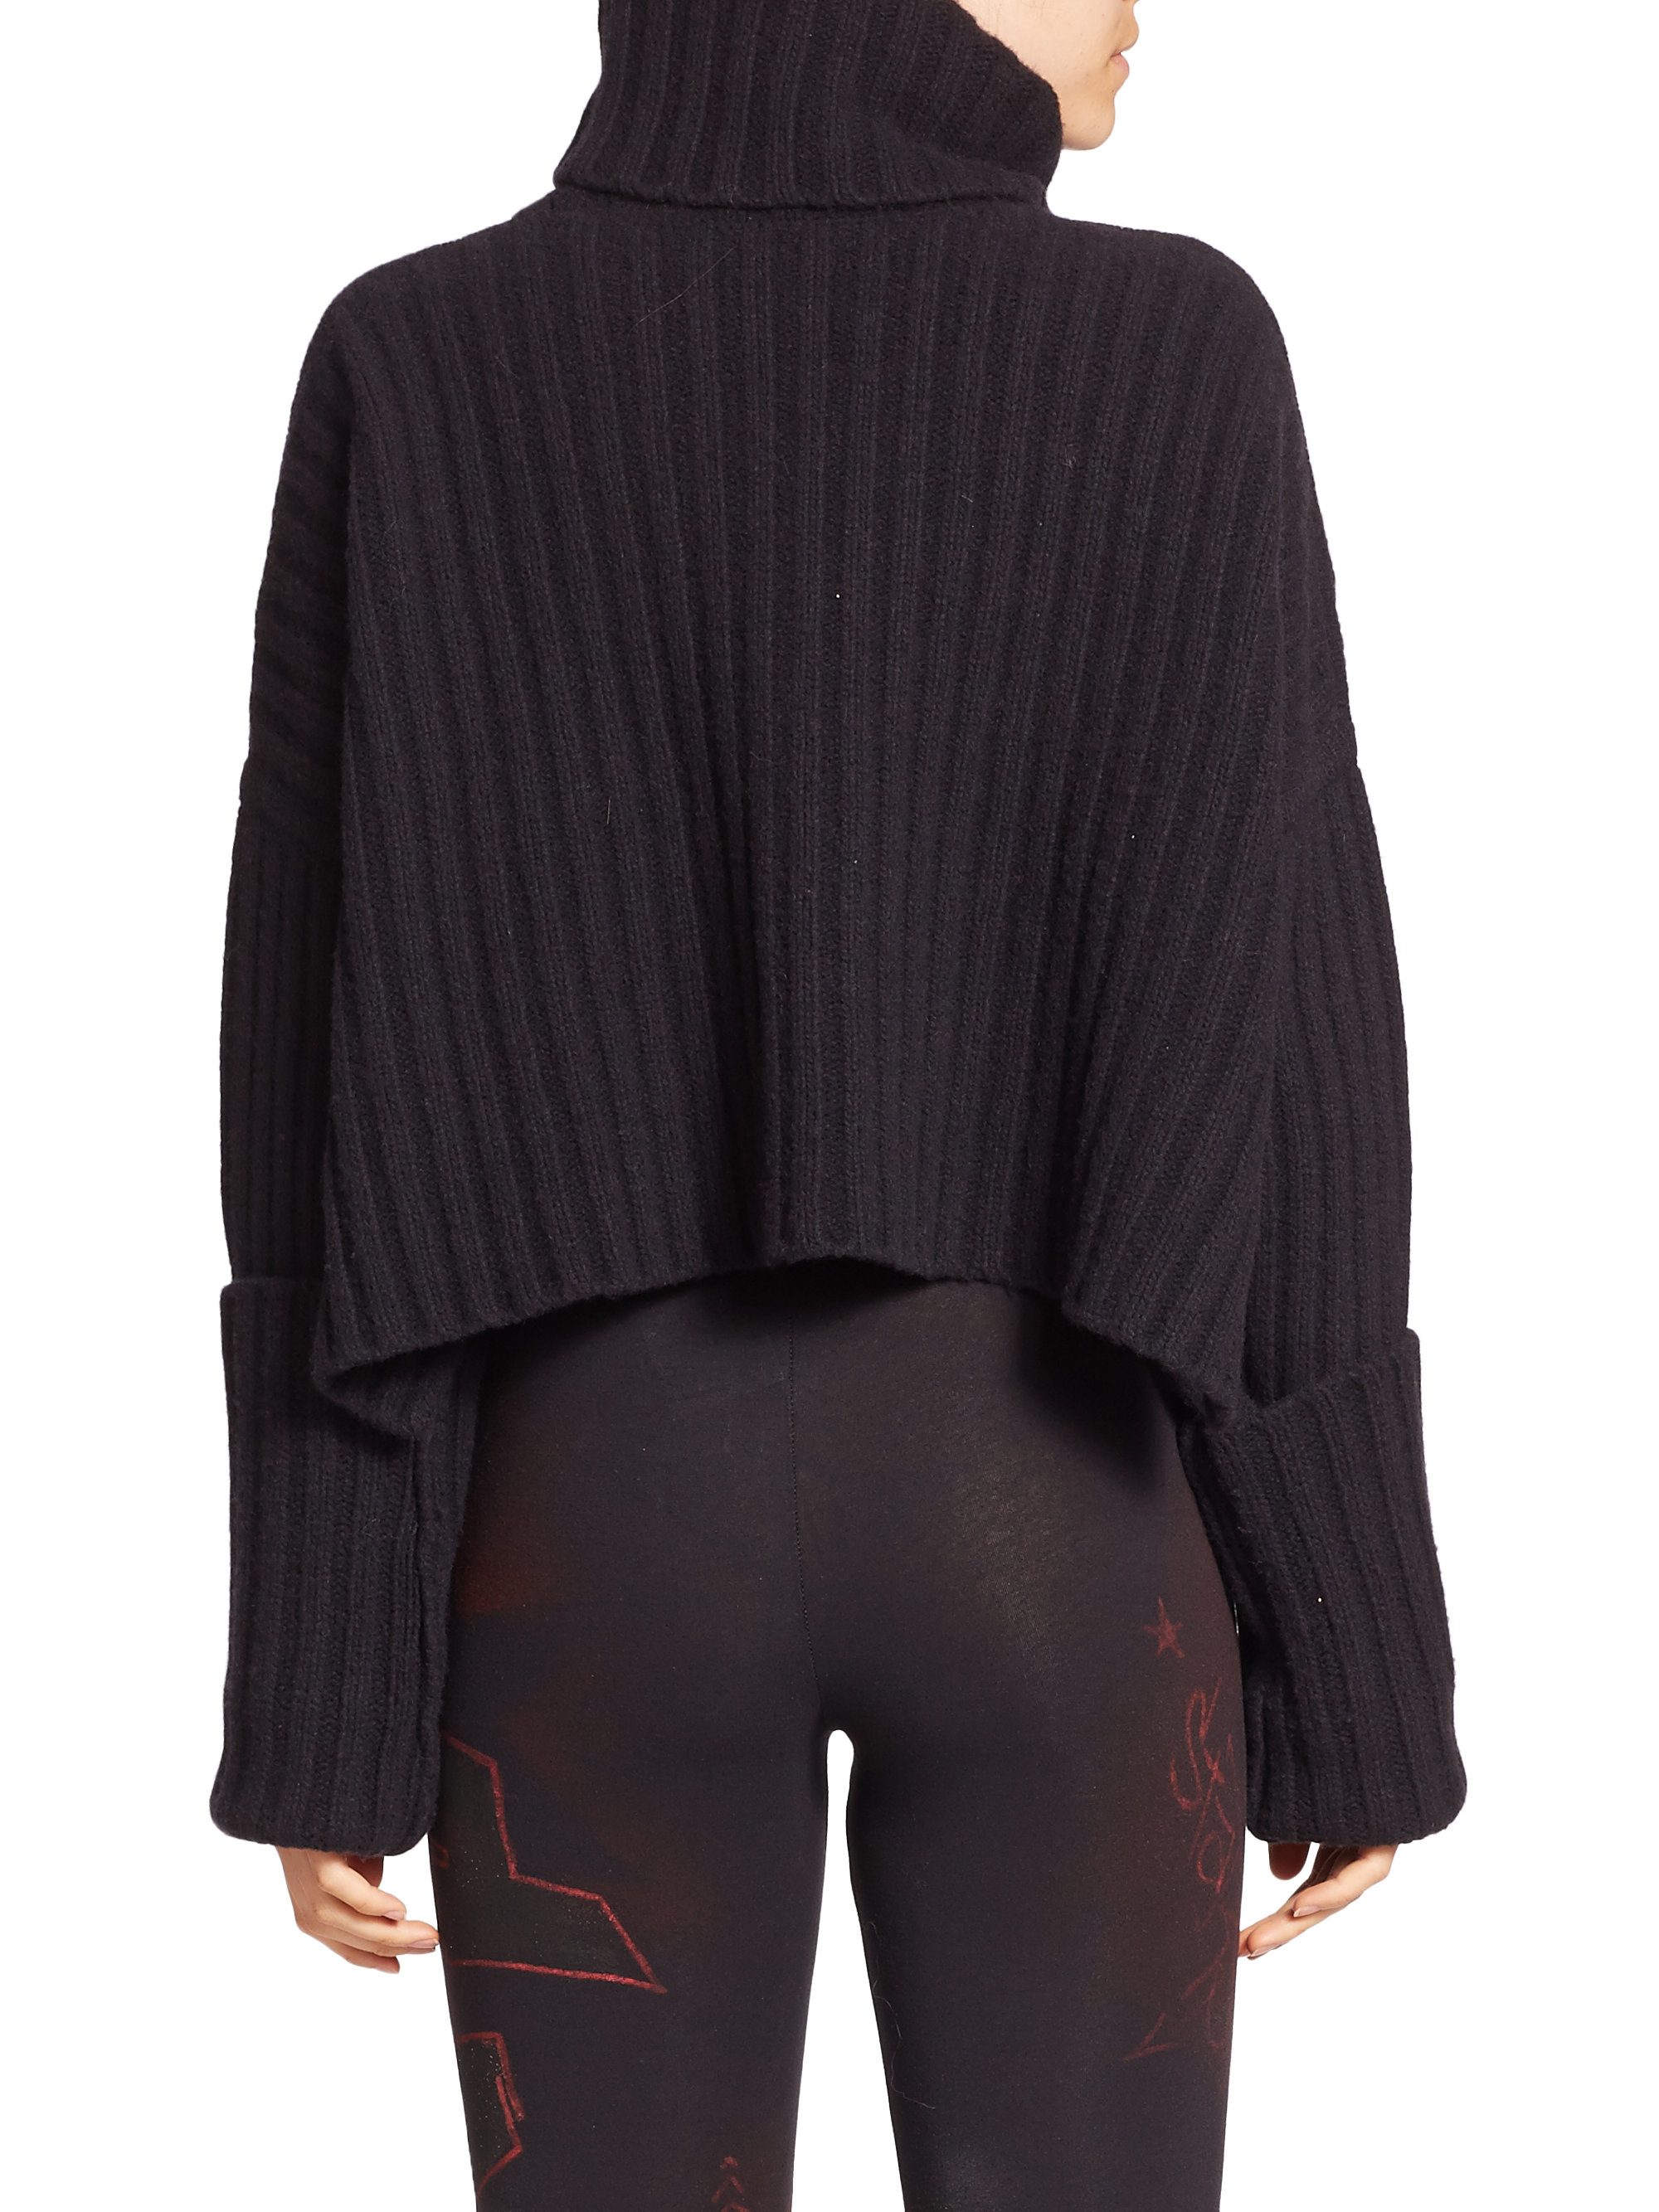 Faith connexion Chunky-rib Wool Turtleneck Sweater in Black | Lyst